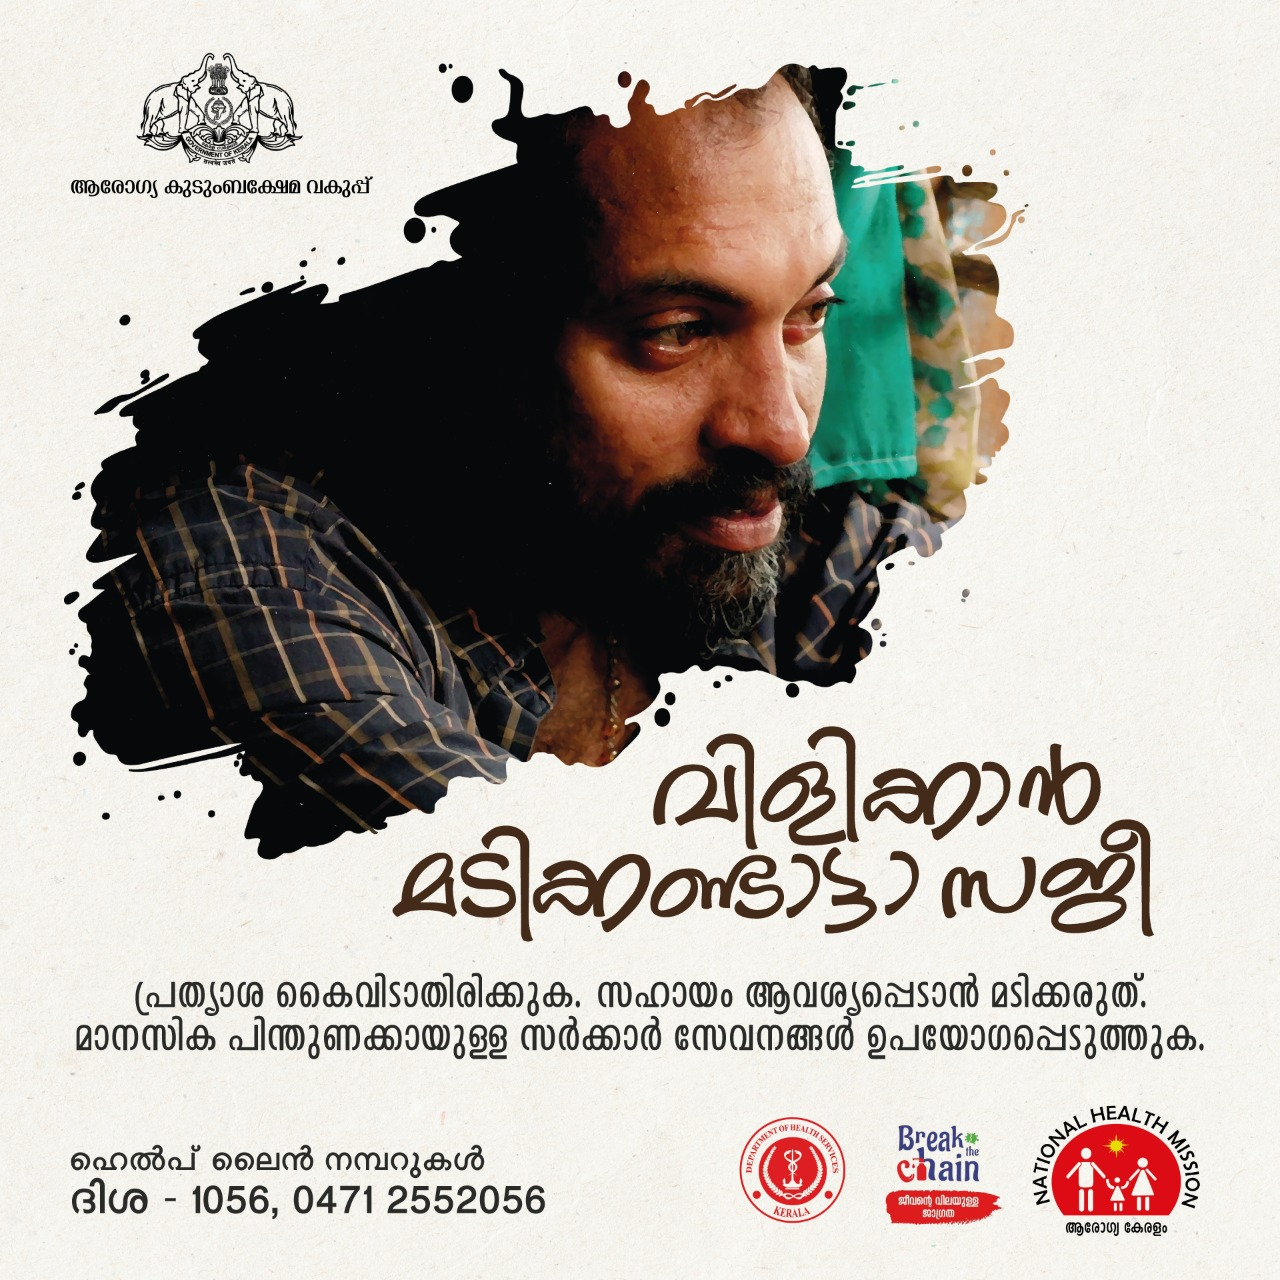 "Image of Saji from the film when he calls to his brother to take him to the doctor. Text reads ""Don't hesitate to call, Saji"" in Malayalam, and the helpline number for mental health"